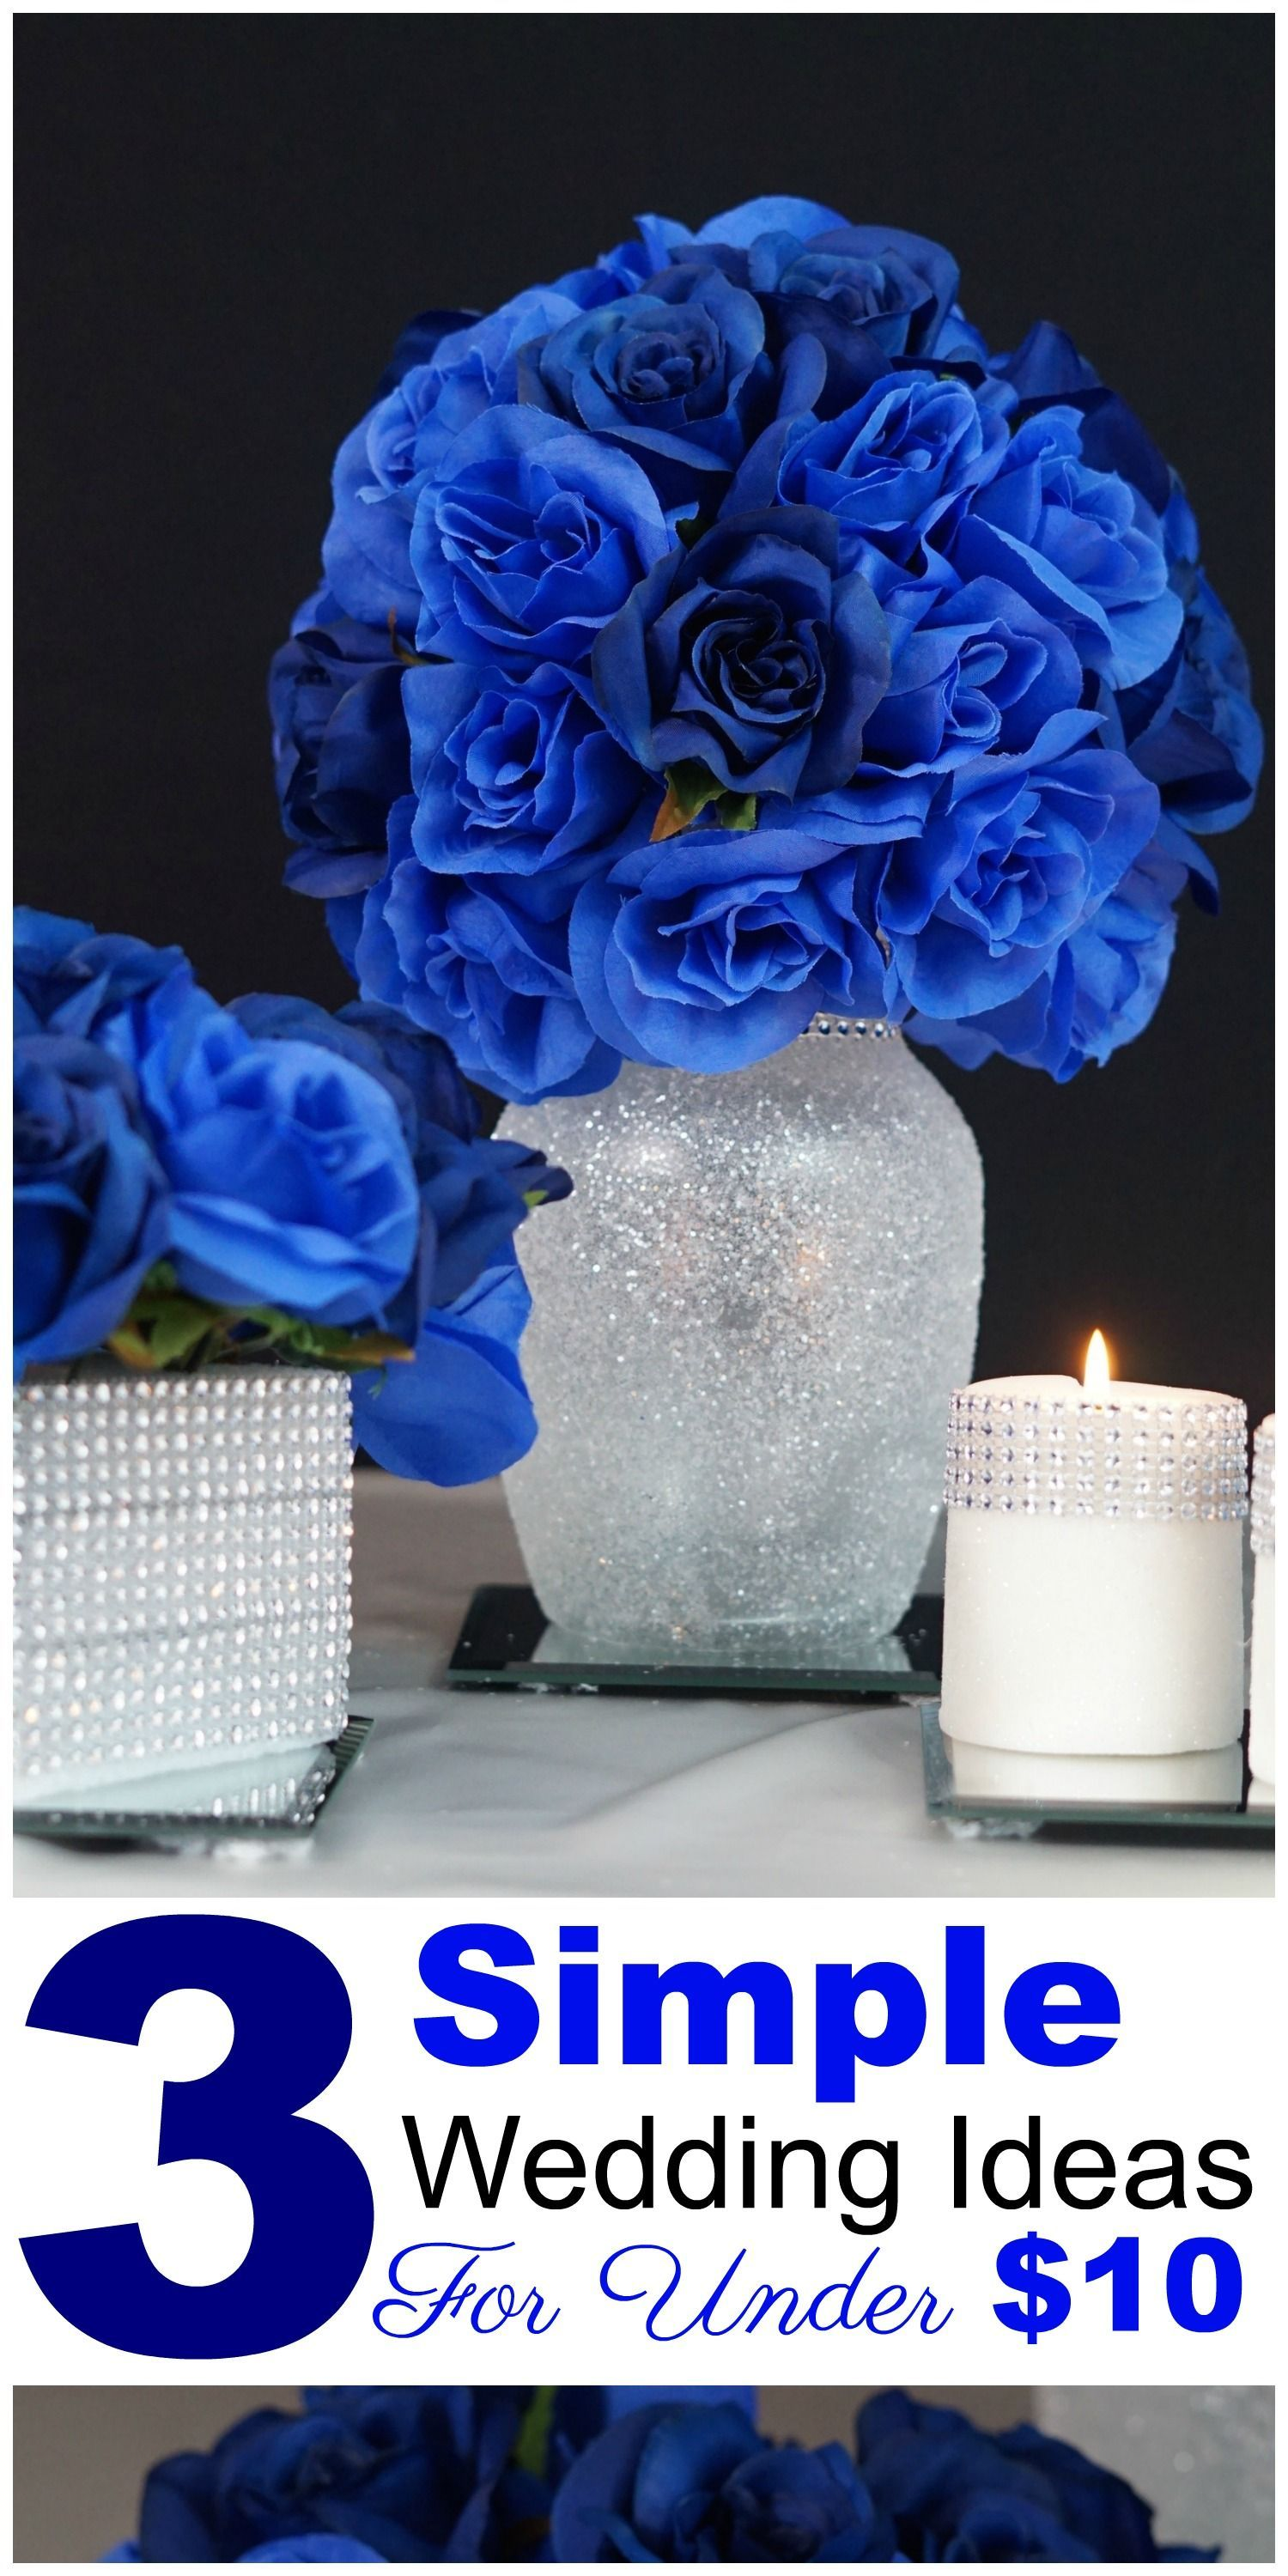 3 Royal Blue Wedding Or Quincenera Centerpiece Ideas For Under 10